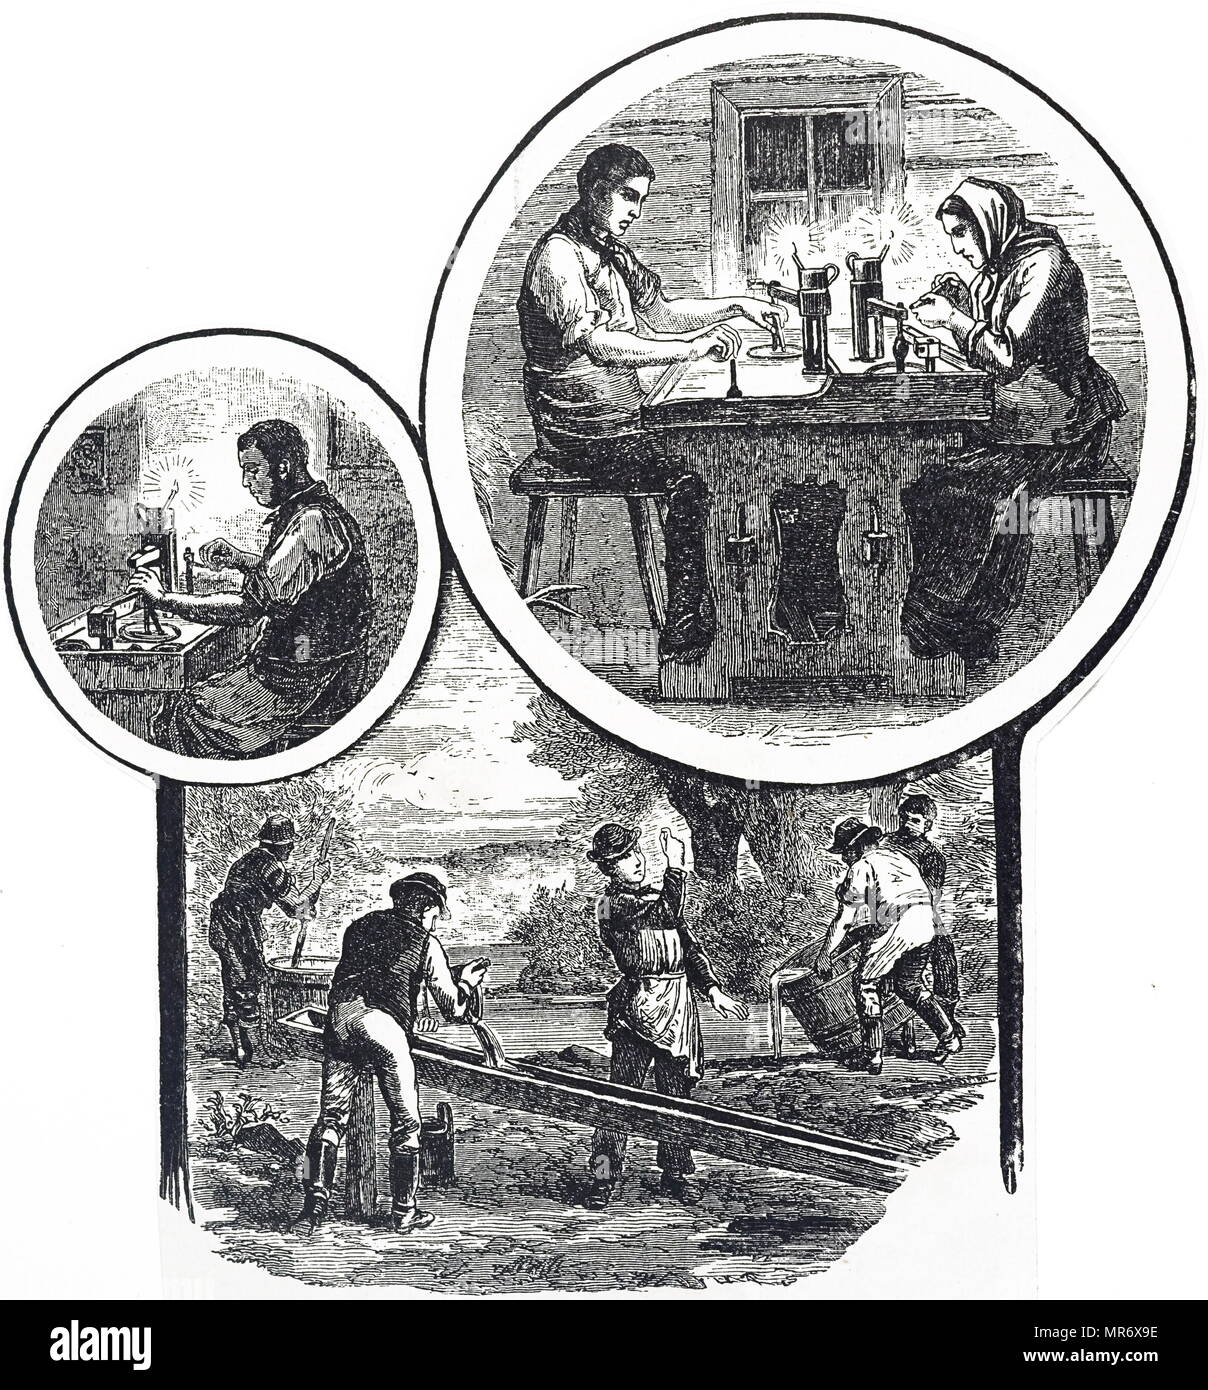 Engraving depicting the productions of Bohemian garnet. At the bottom miners are sieving for garnets, while the man on the top left is splitting the stones. The couple on the top right polish them. Dated 19th century - Stock Image